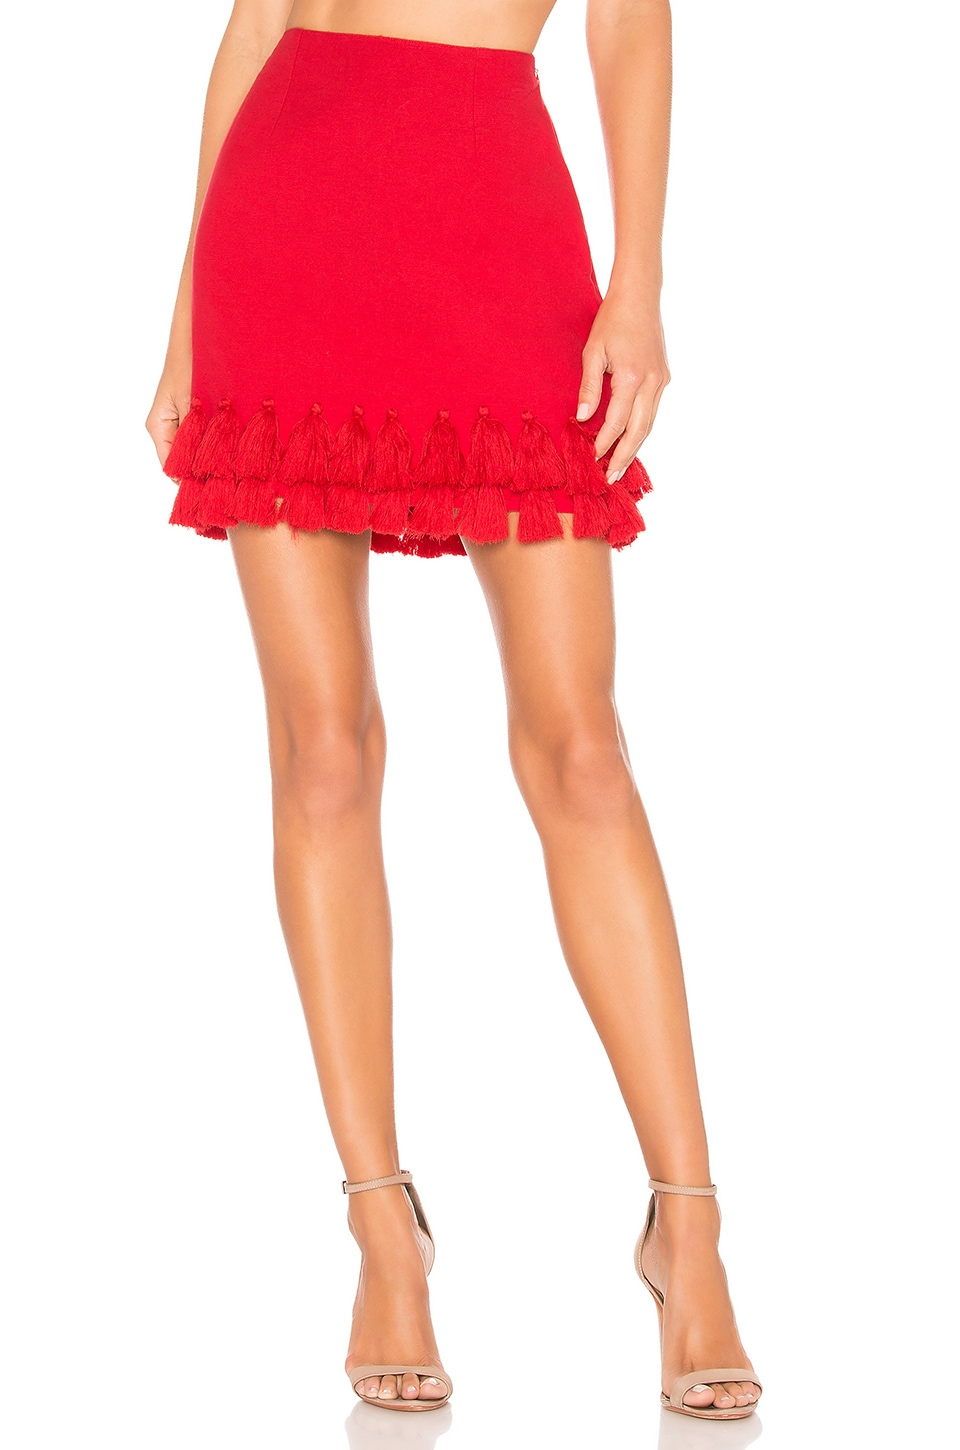 Tularosa Millie Skirt in Bright Red